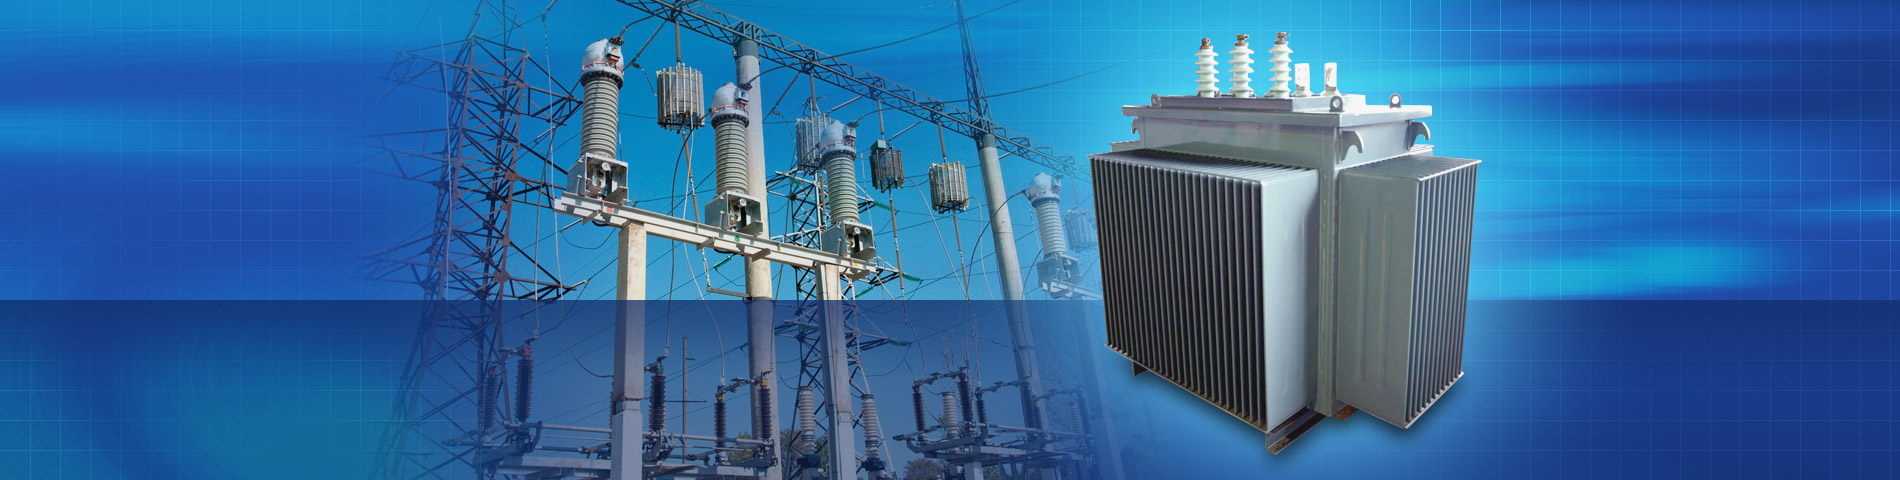 Your best partner for power solutions OEM/ODM Services Available